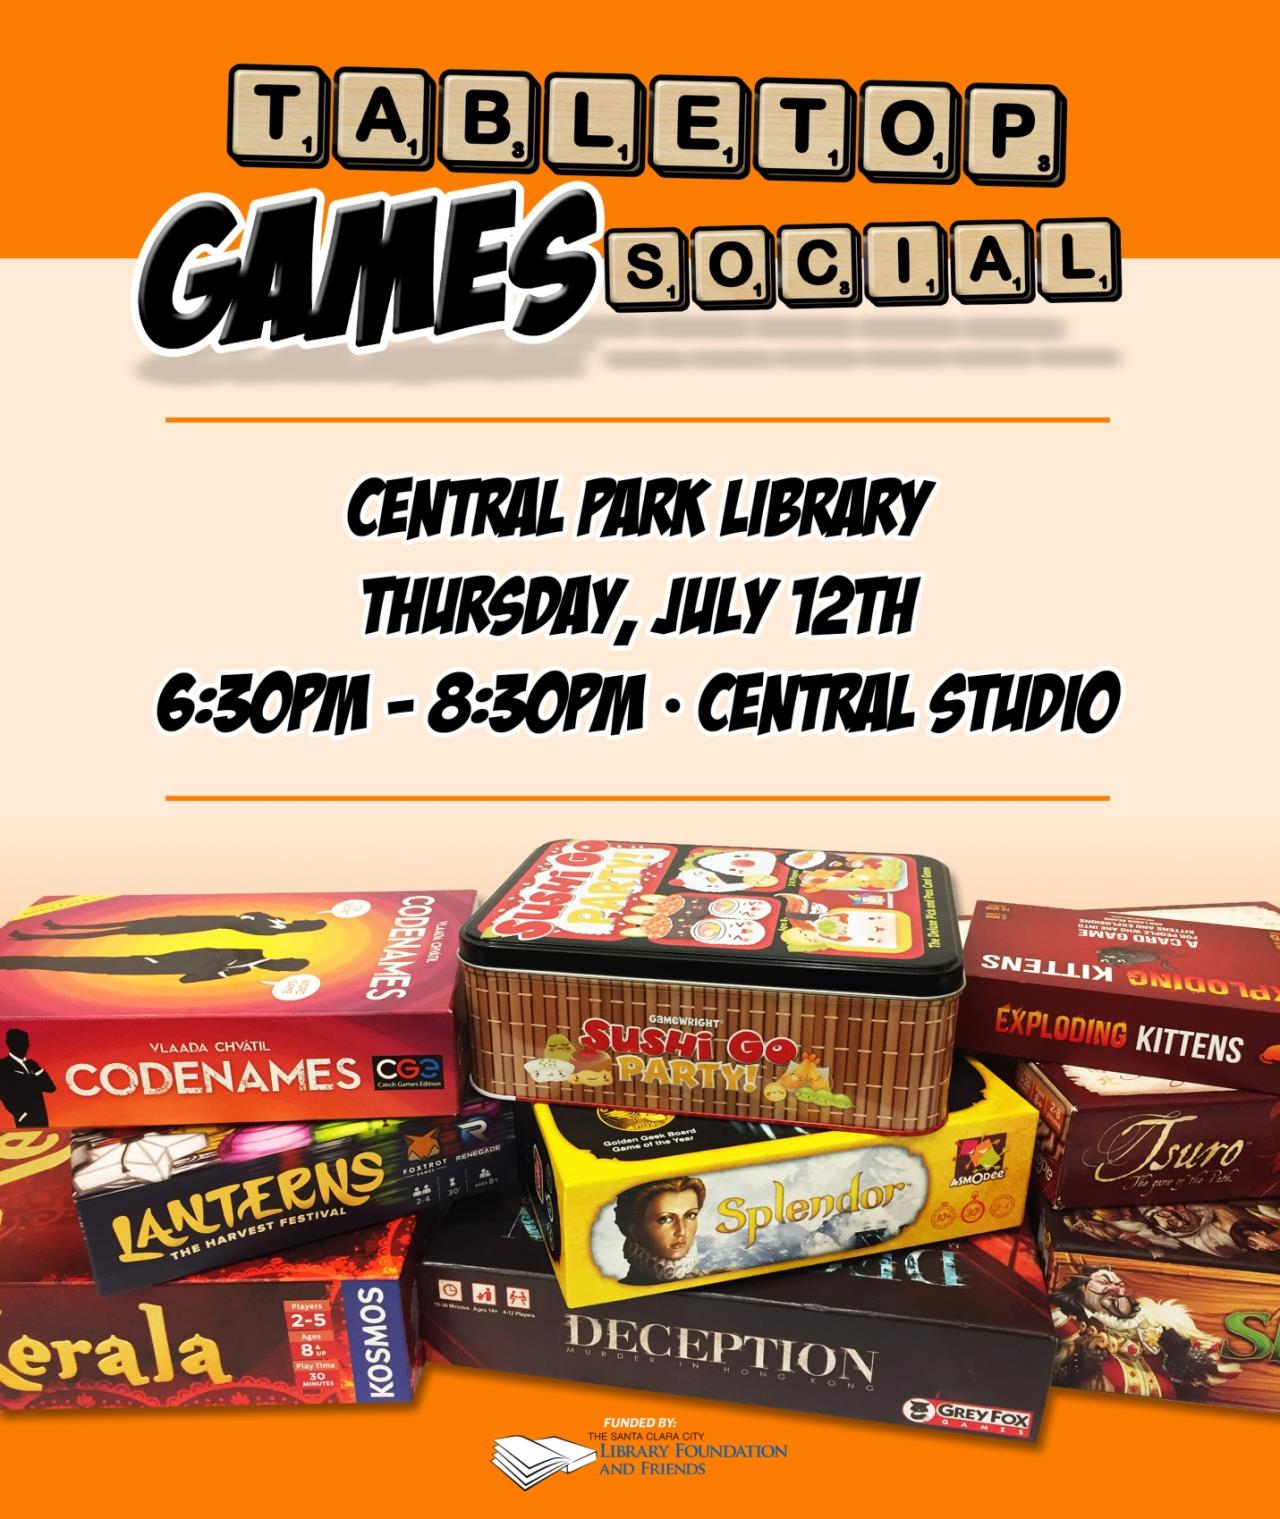 Tabletop games social, central park library, thursday July 12th, 6:30 to 8:30, central studios